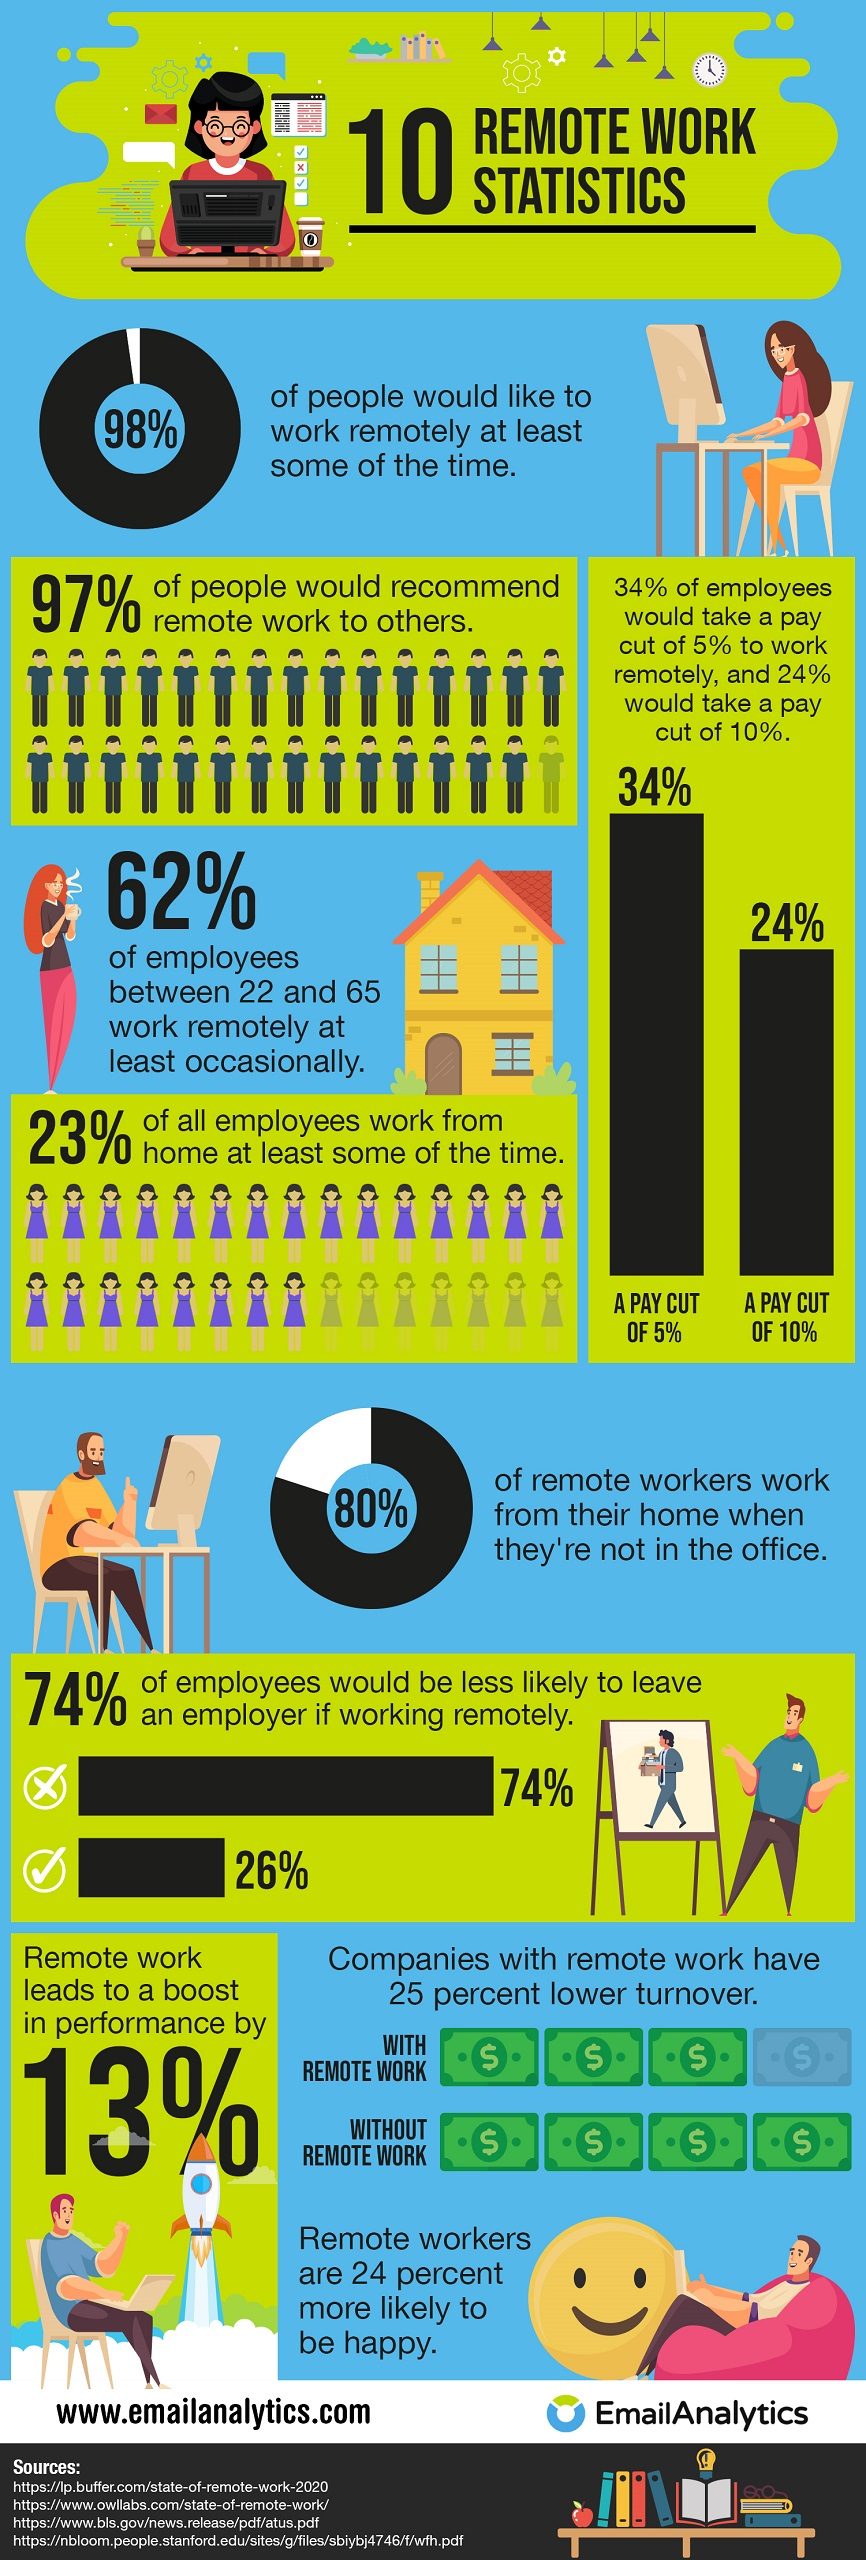 10 Remote Work Statistics - Infographic